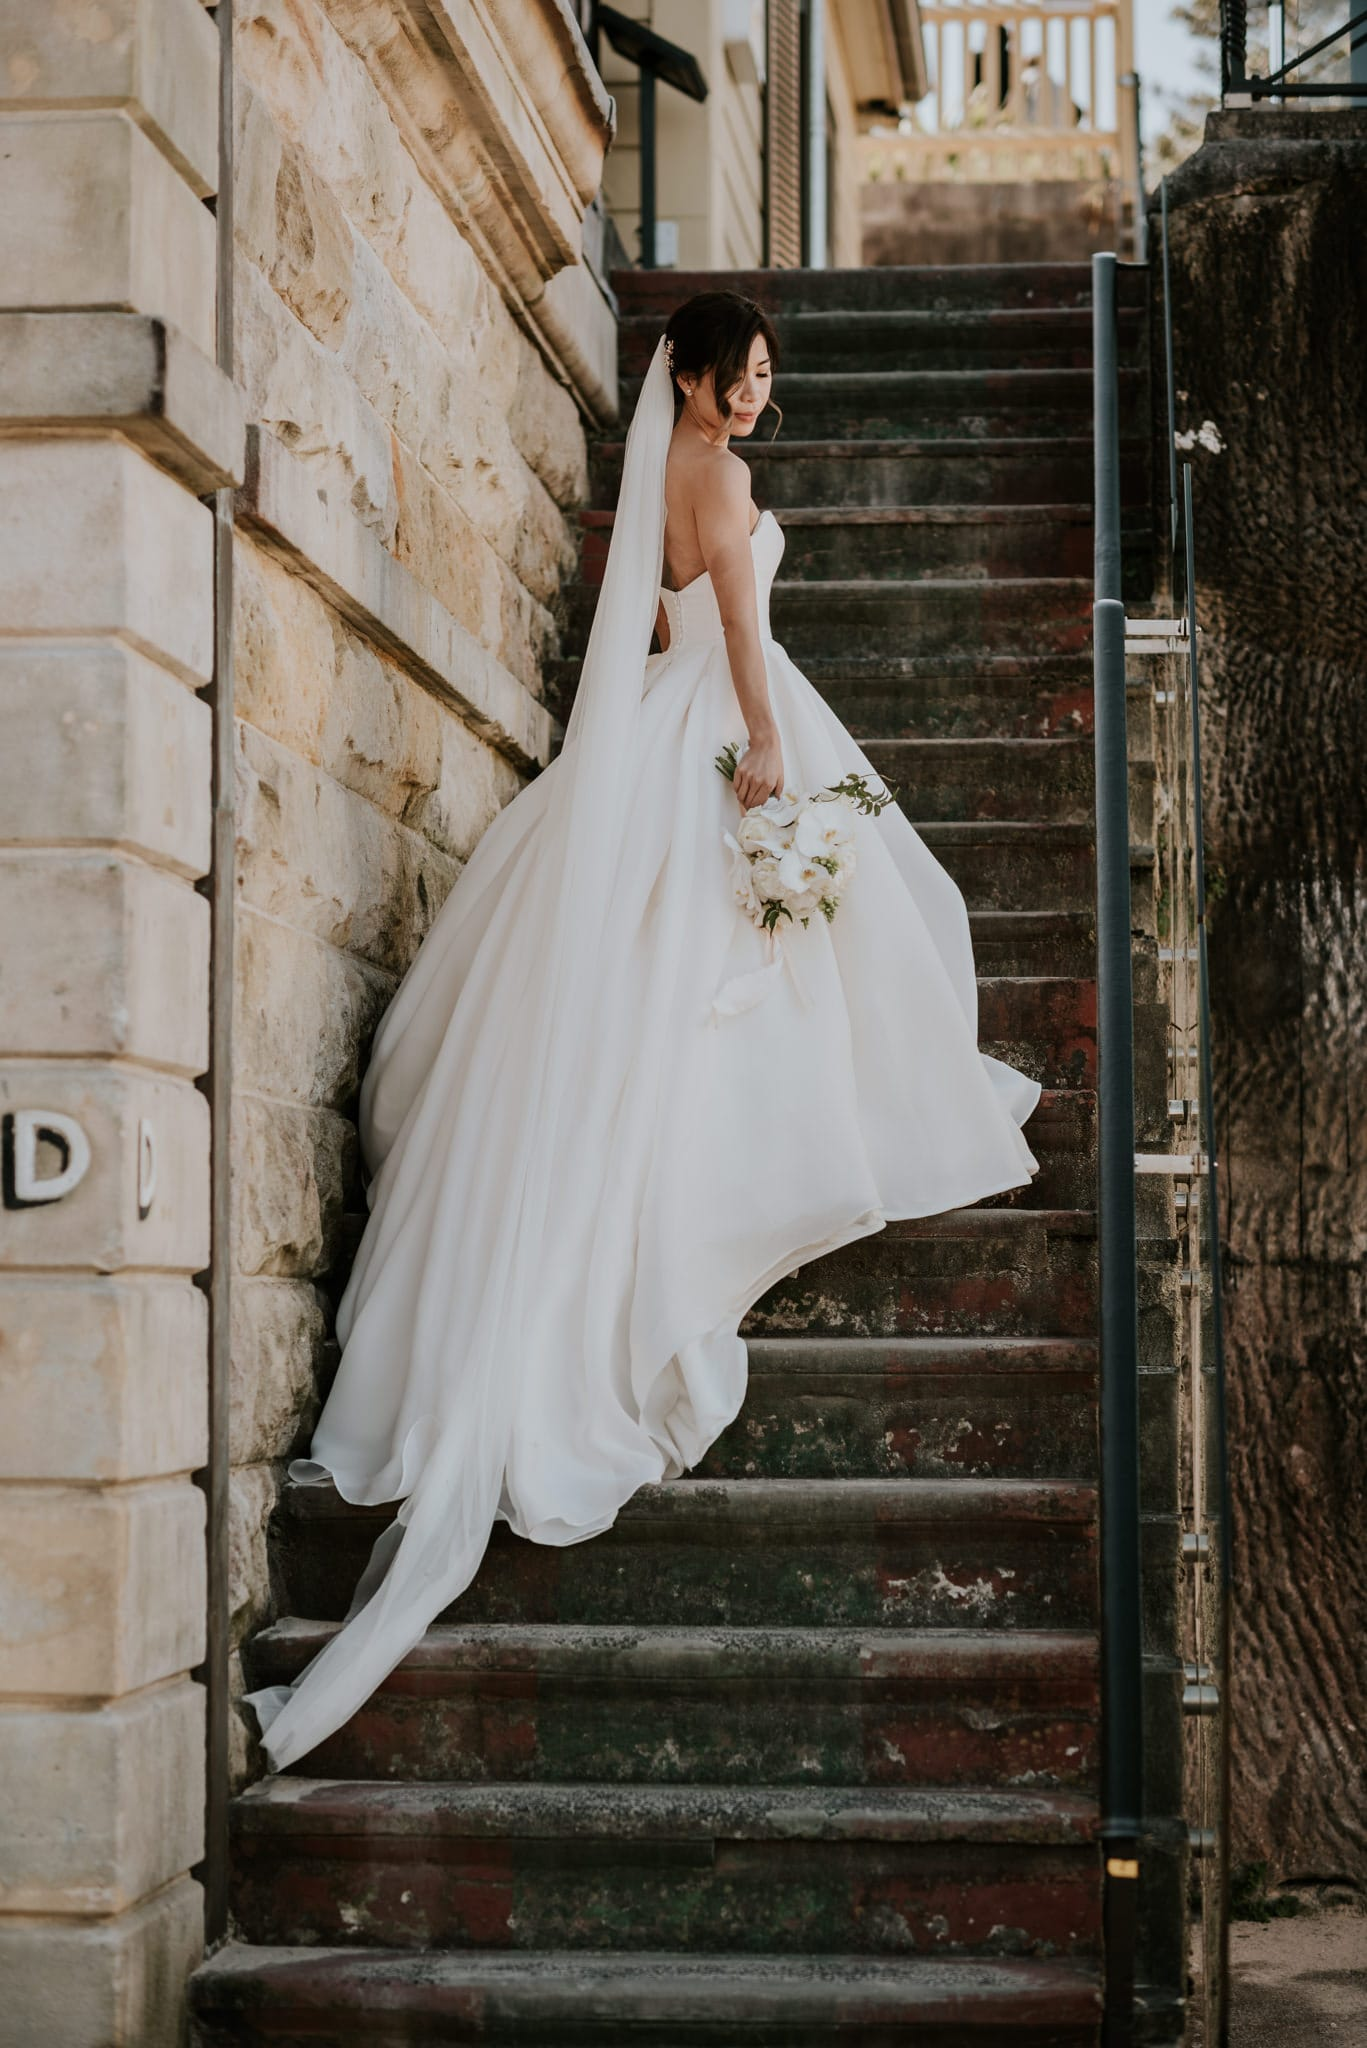 Wedding Photography Styles That Fit Your Unique Bridal Vision. #MaggieBride wearing Bianca wedding dress by Maggie Sottero.